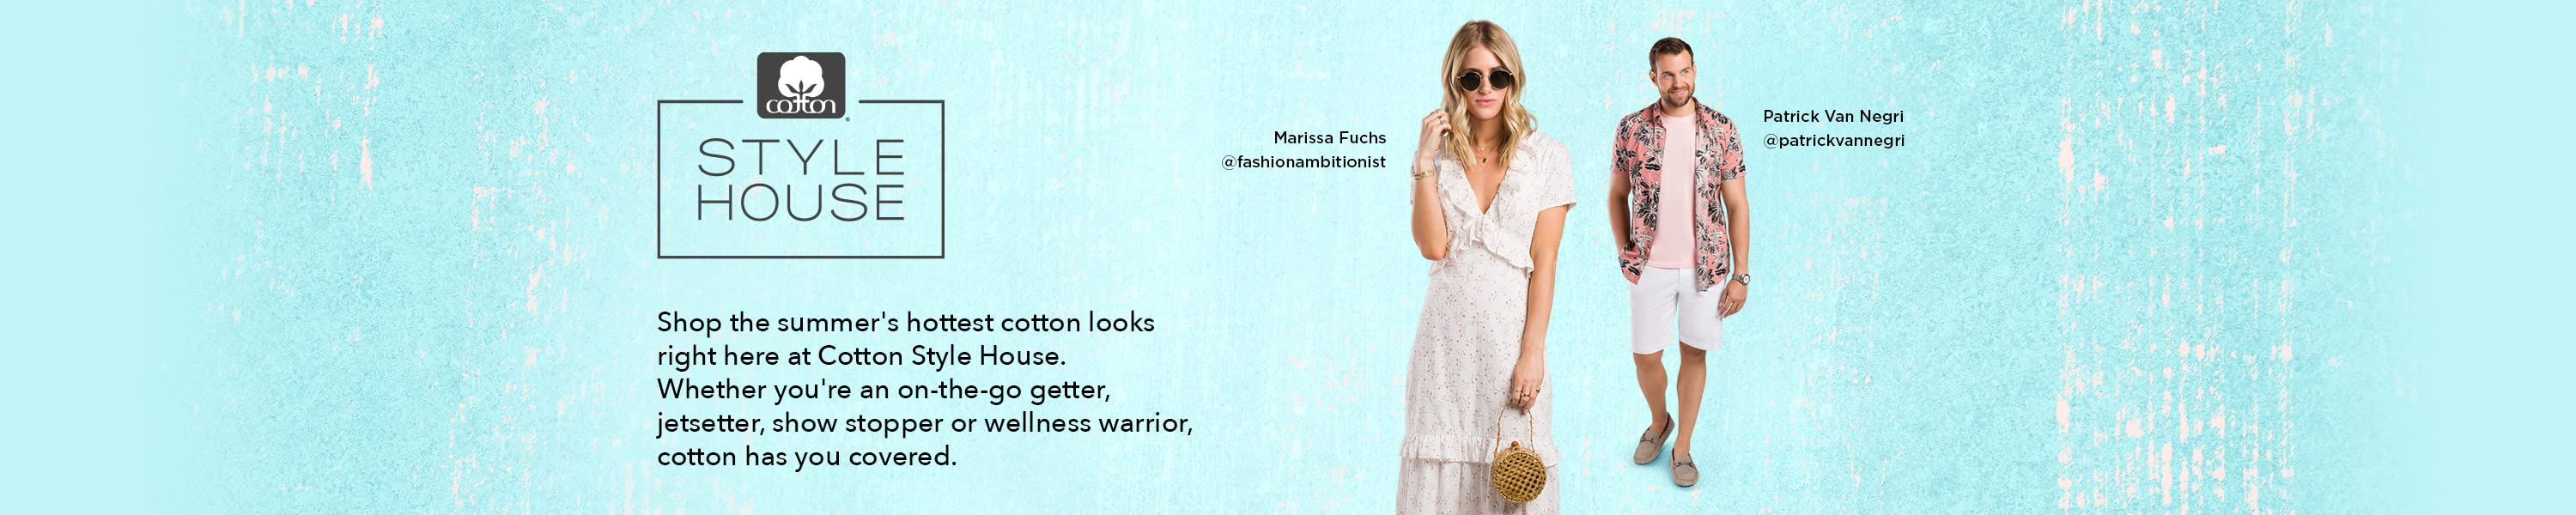 Cotton Style House. Shop the summer's hottest cotton looks right here at Cotton Style House. Whether you're an on-the-go getter, jetsetter, show stopper or wellness warrior, cotton has you covered.